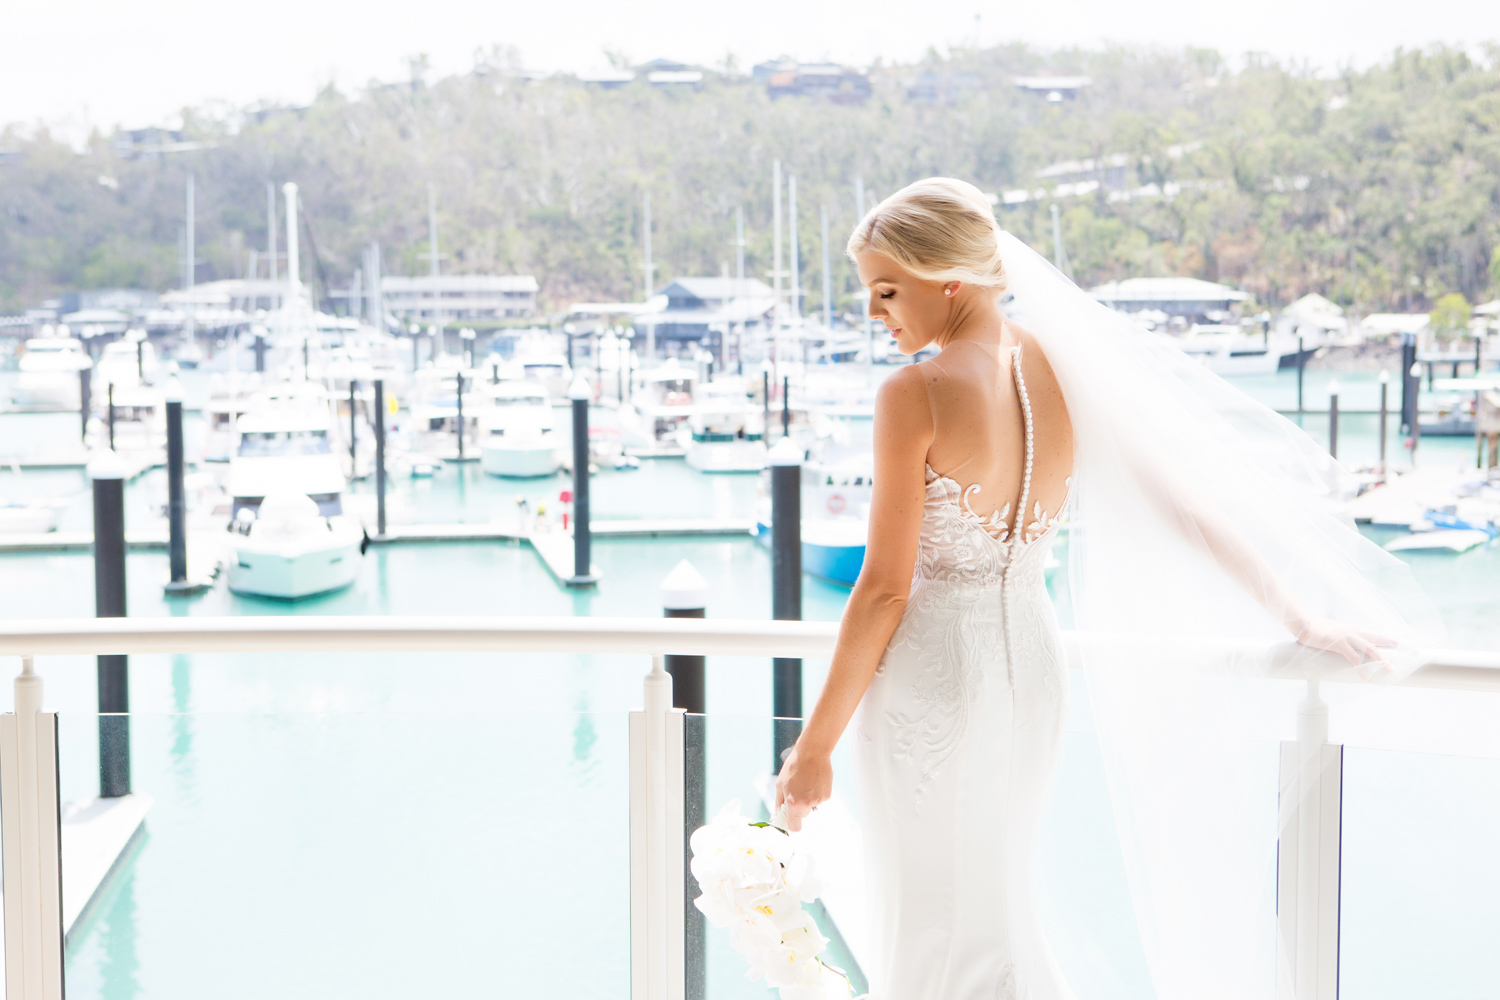 wedding-0120-bride-veil-wind-beautiful-boats-australia.jpg